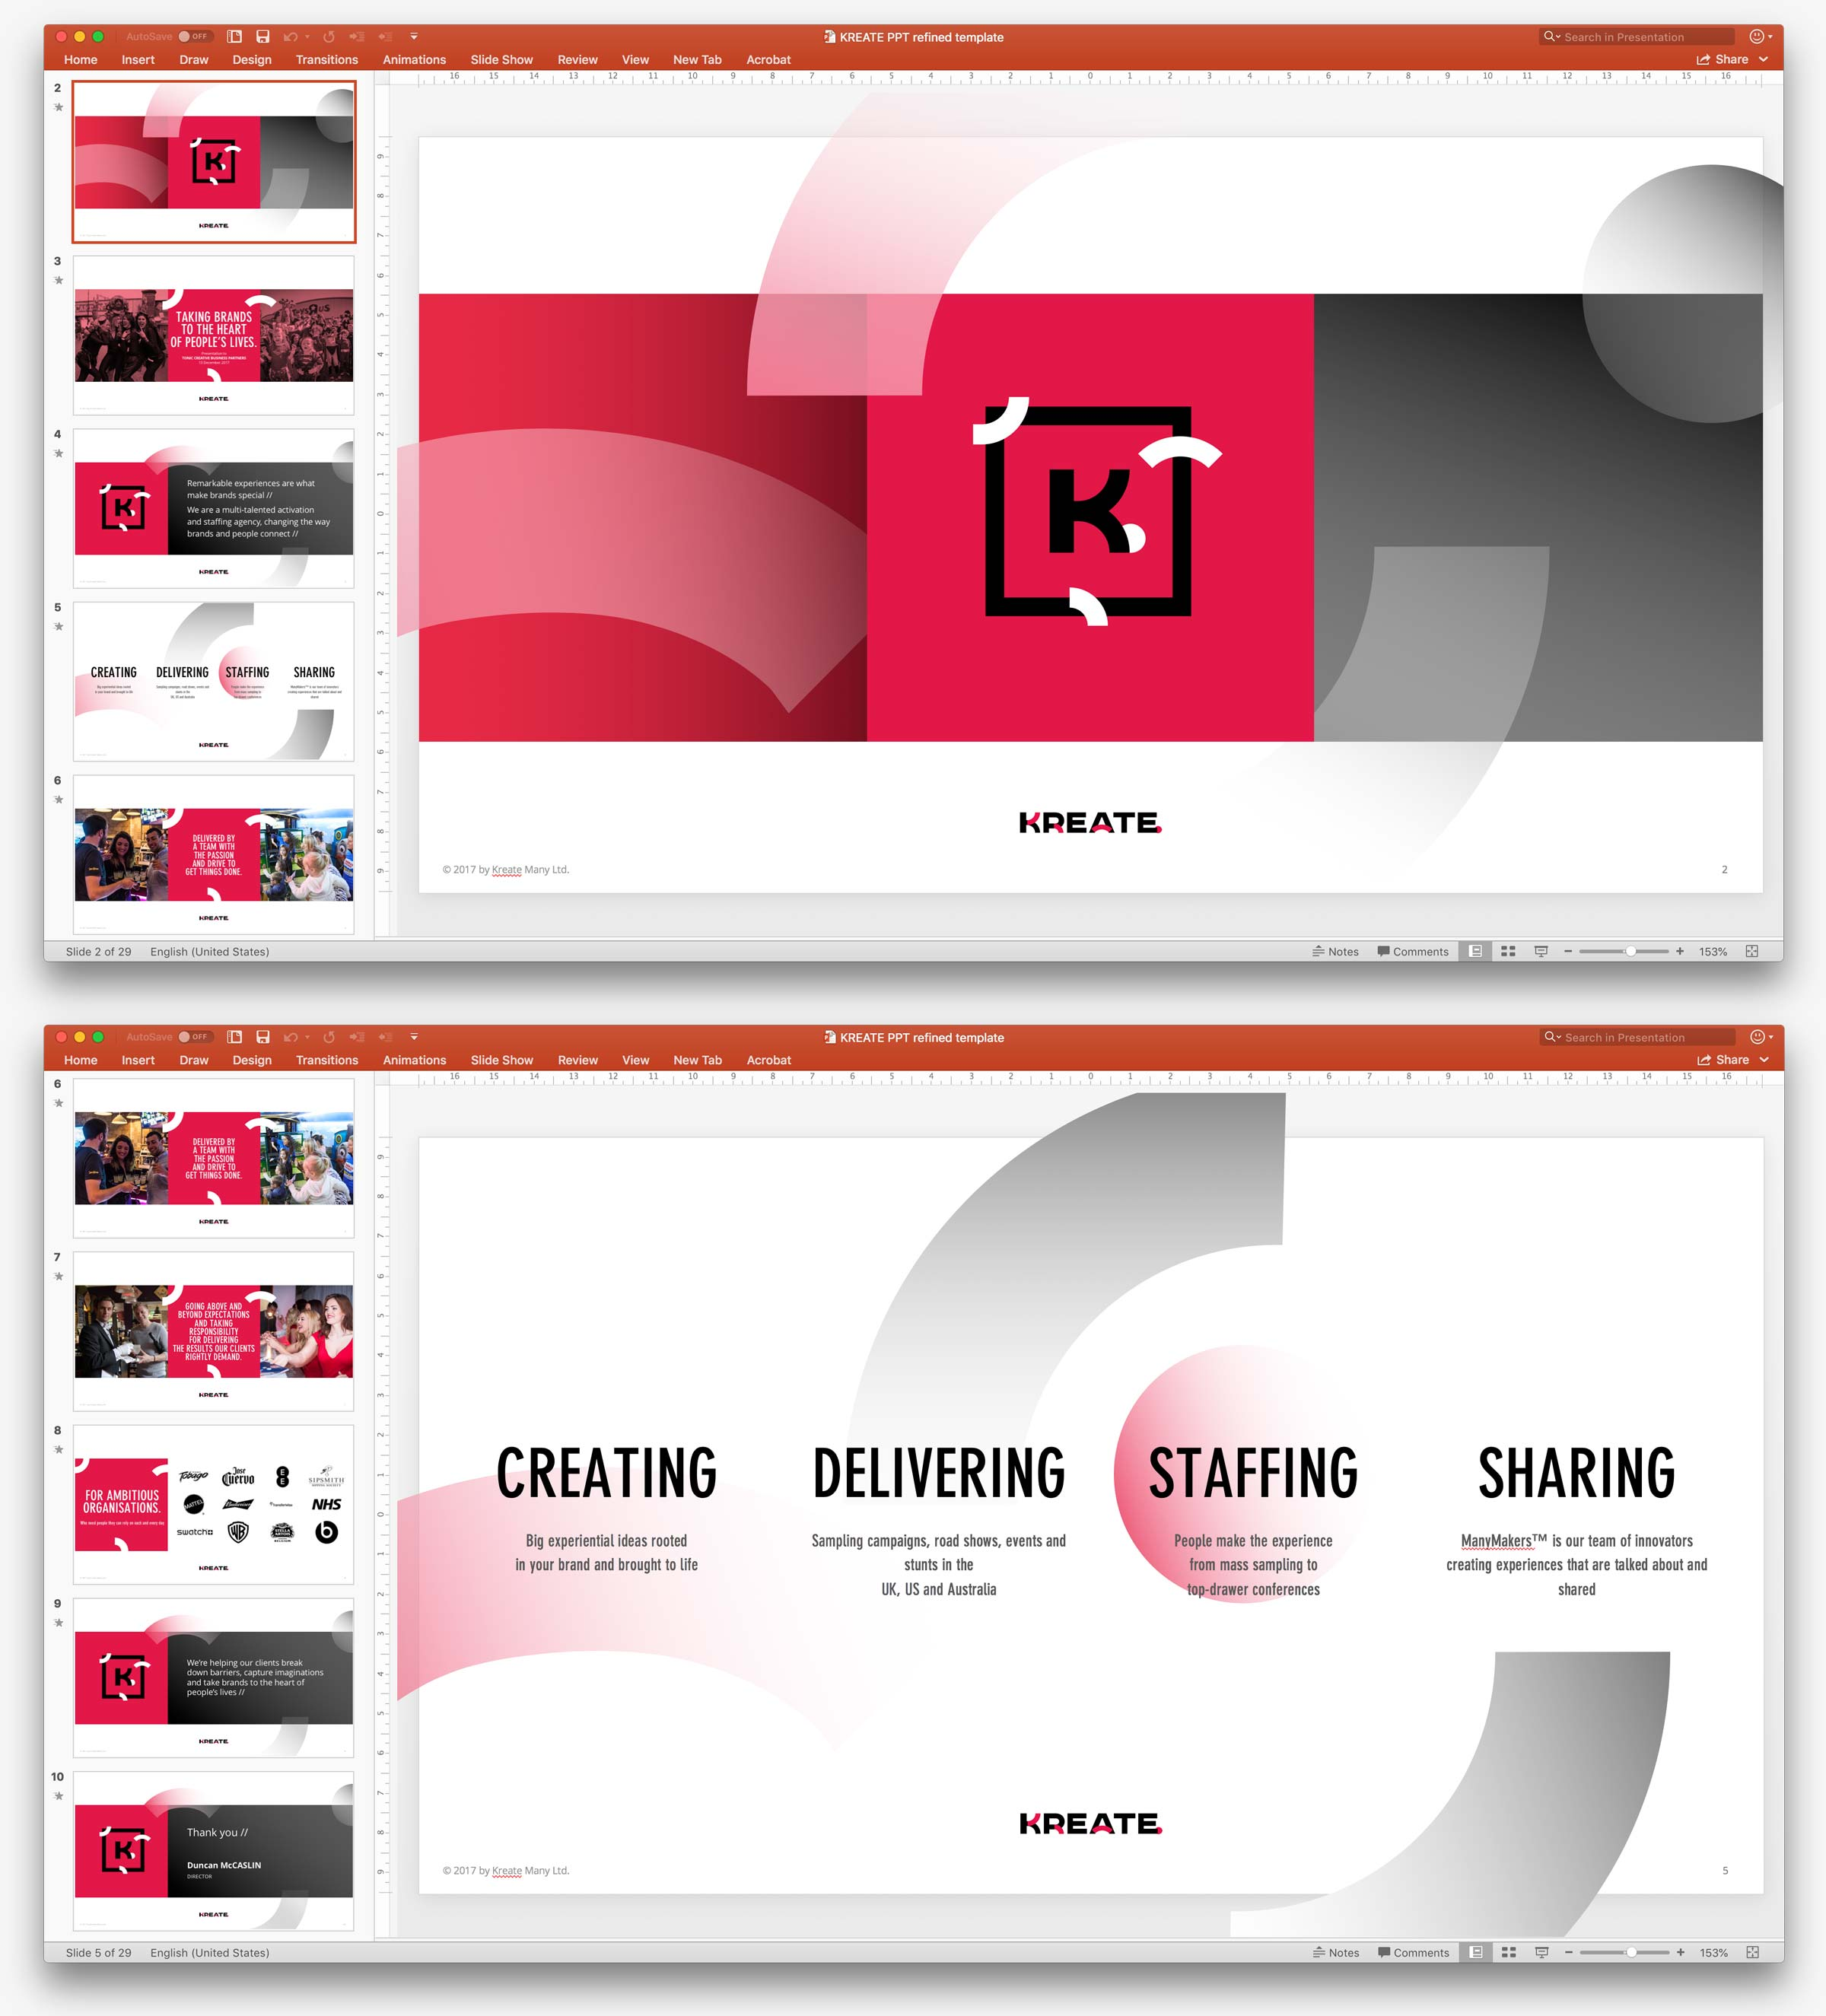 KREATE presentation template